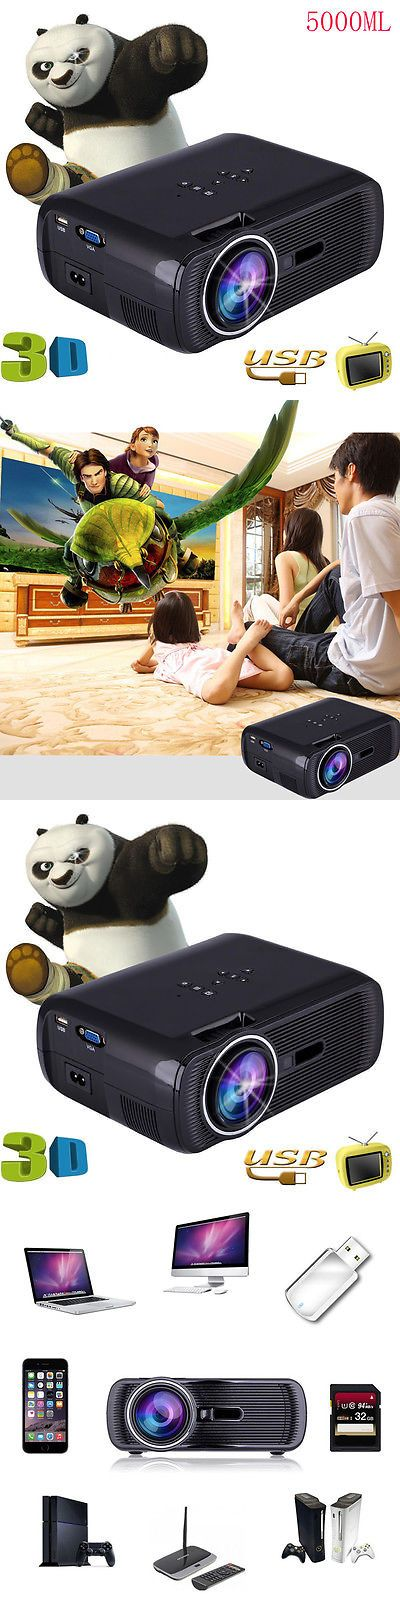 Home Theater Projectors: 7000 Lumens Full Hd 1080P Home Cinema Theater Led Lcd 3D Projector Hdmi 1280X800 BUY IT NOW ONLY: $67.95